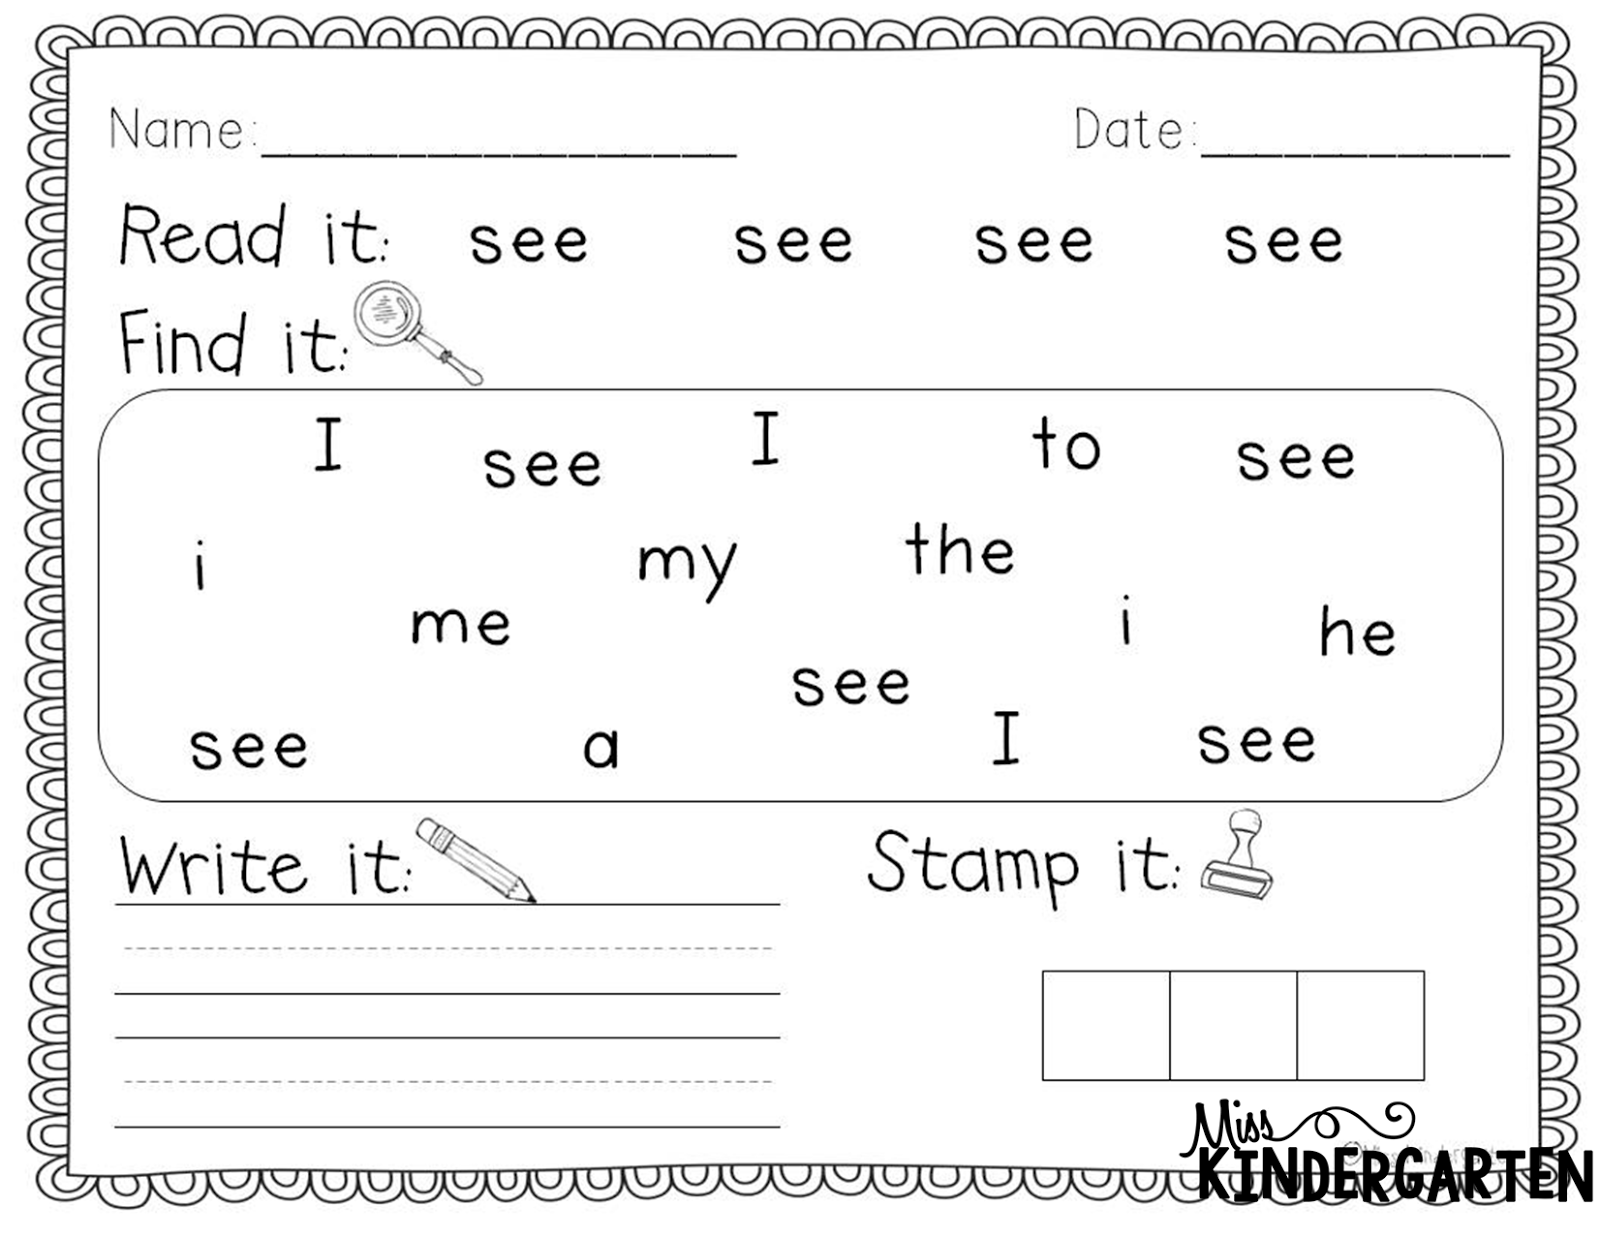 Worksheet 612792 Sight Words Worksheets for Kindergarten – Sight Word Worksheets for Kindergarten